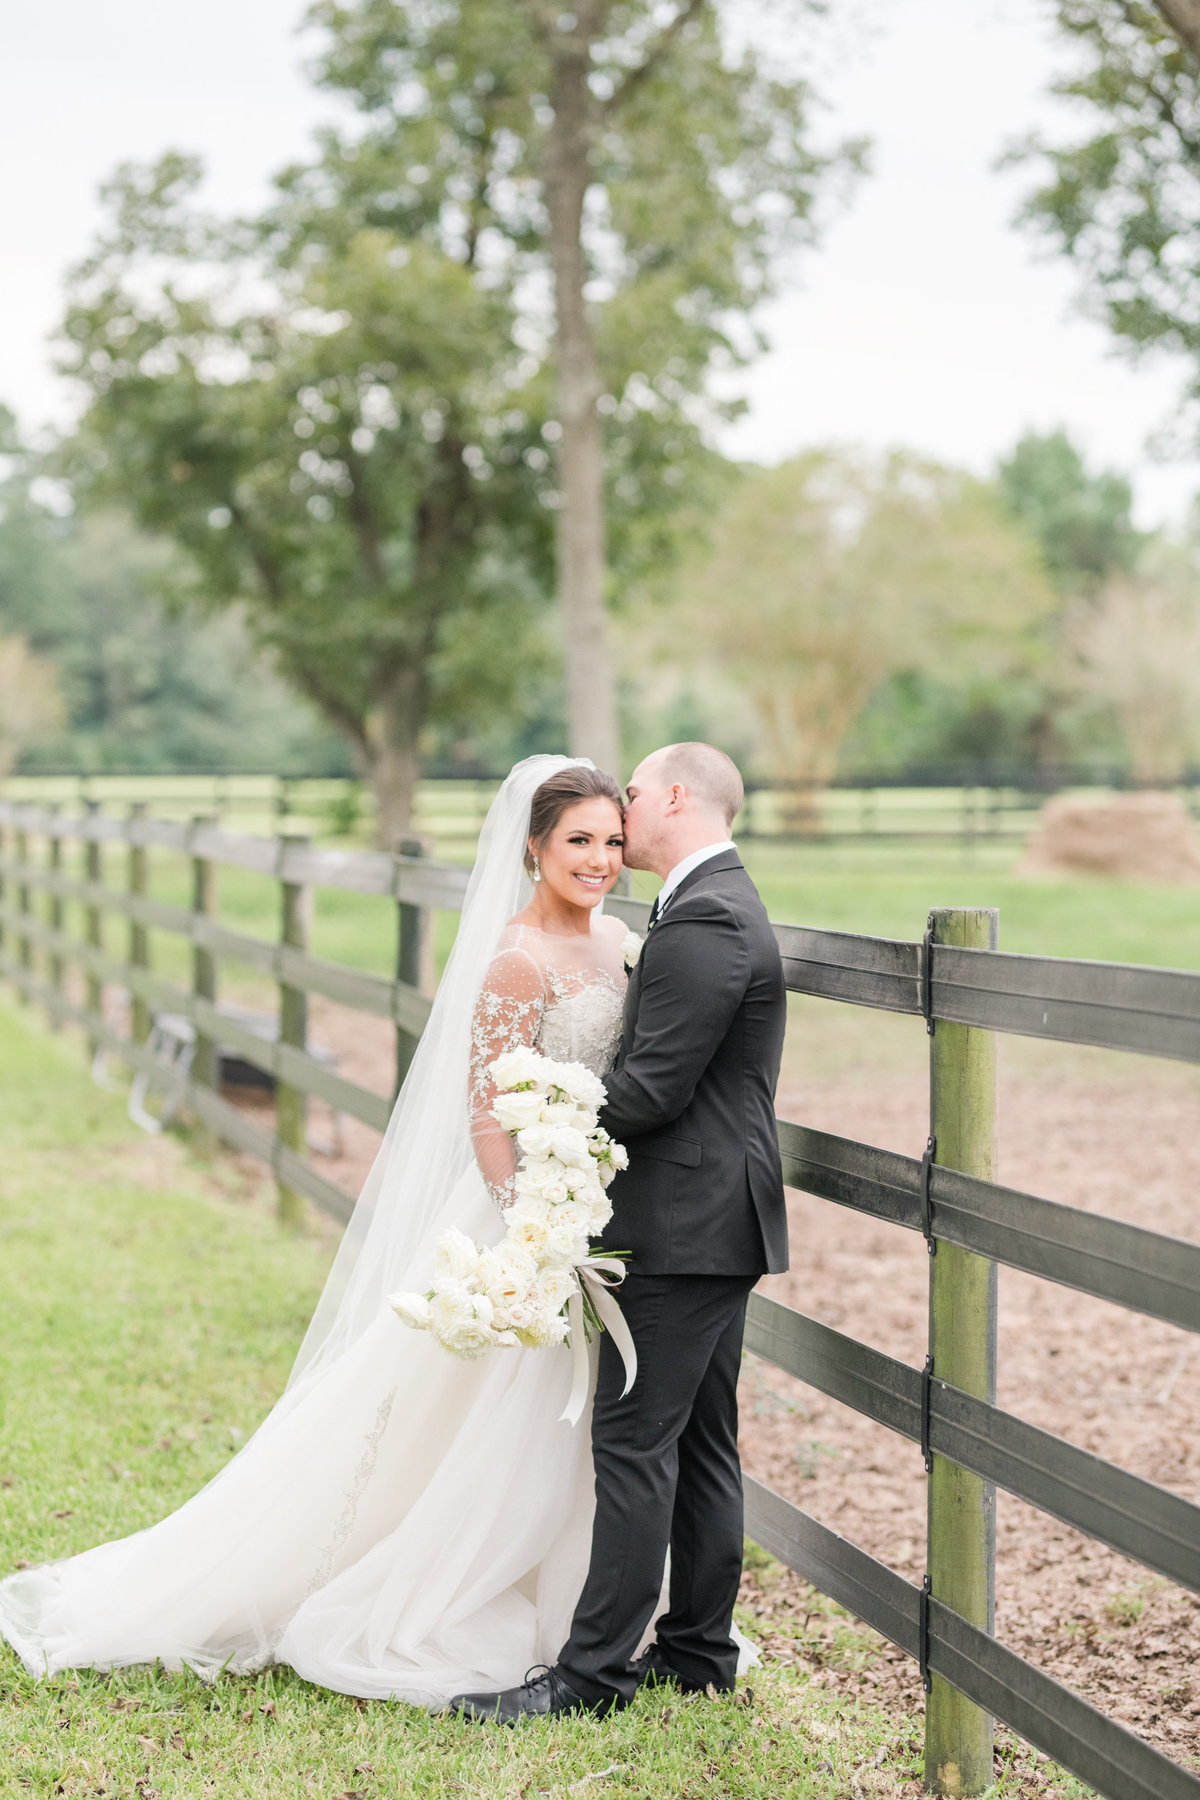 Sandlewood Manor Luxury Wedding